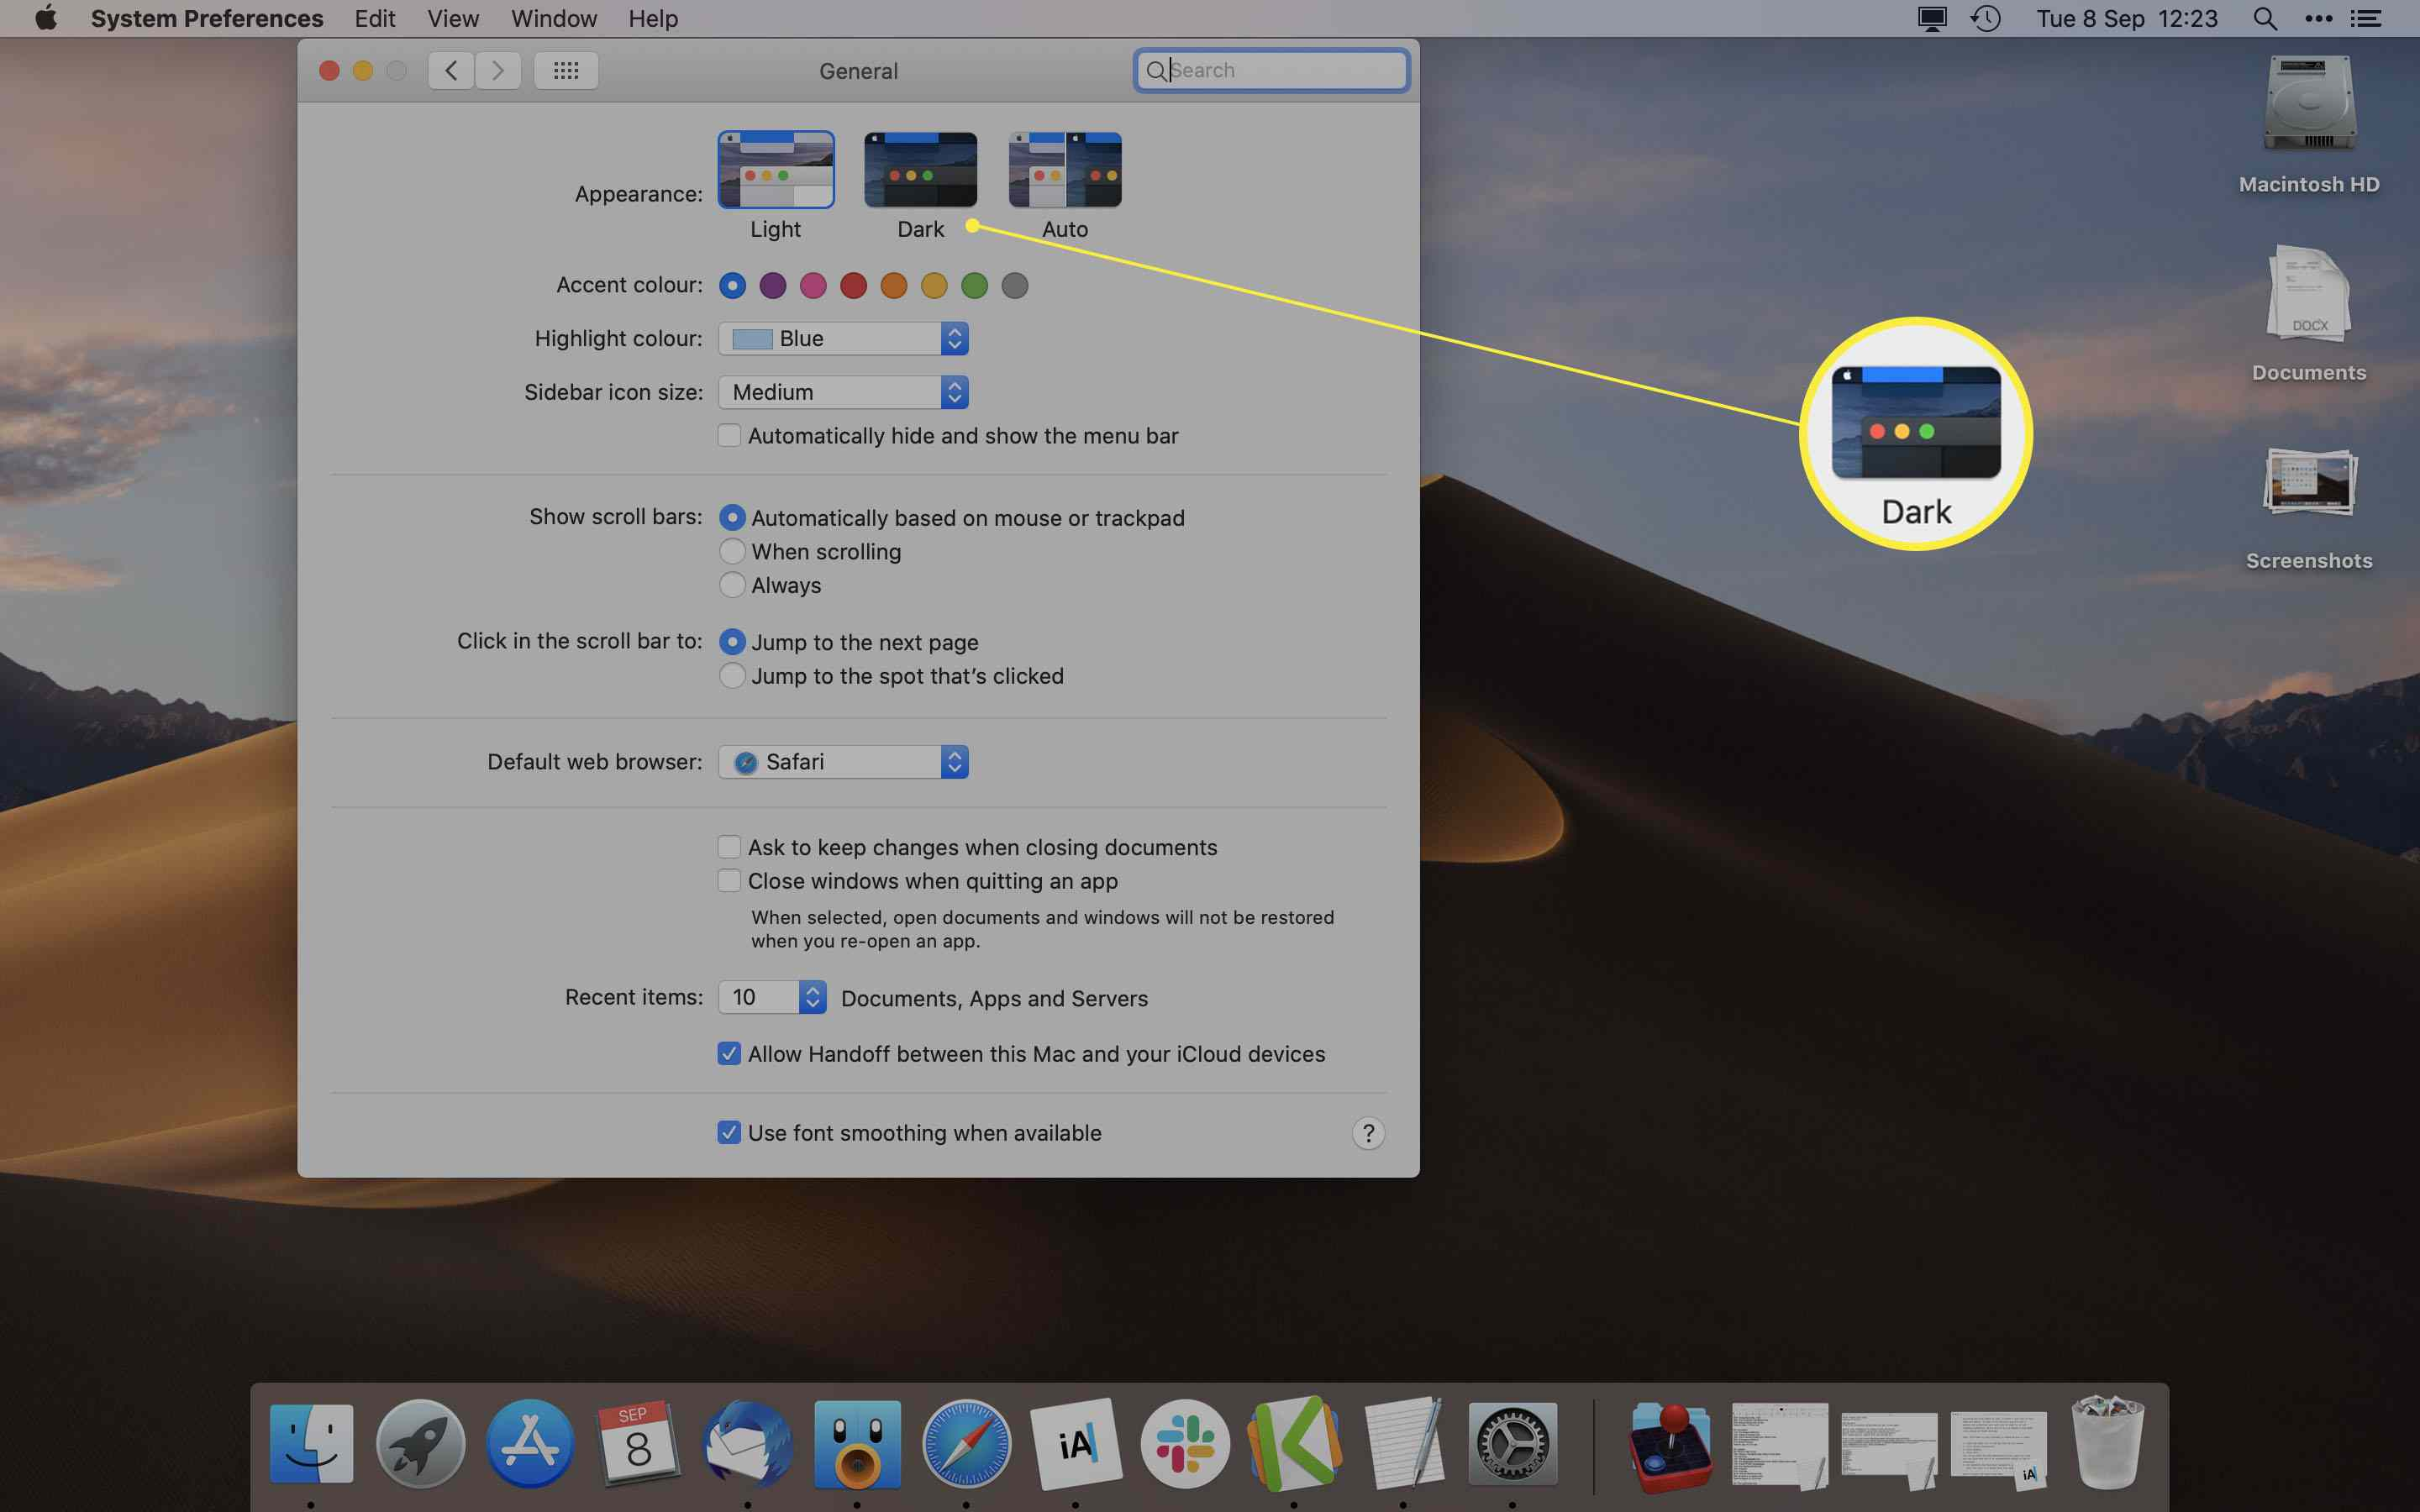 MacOS System Preferences with Dark Appearance highlighted